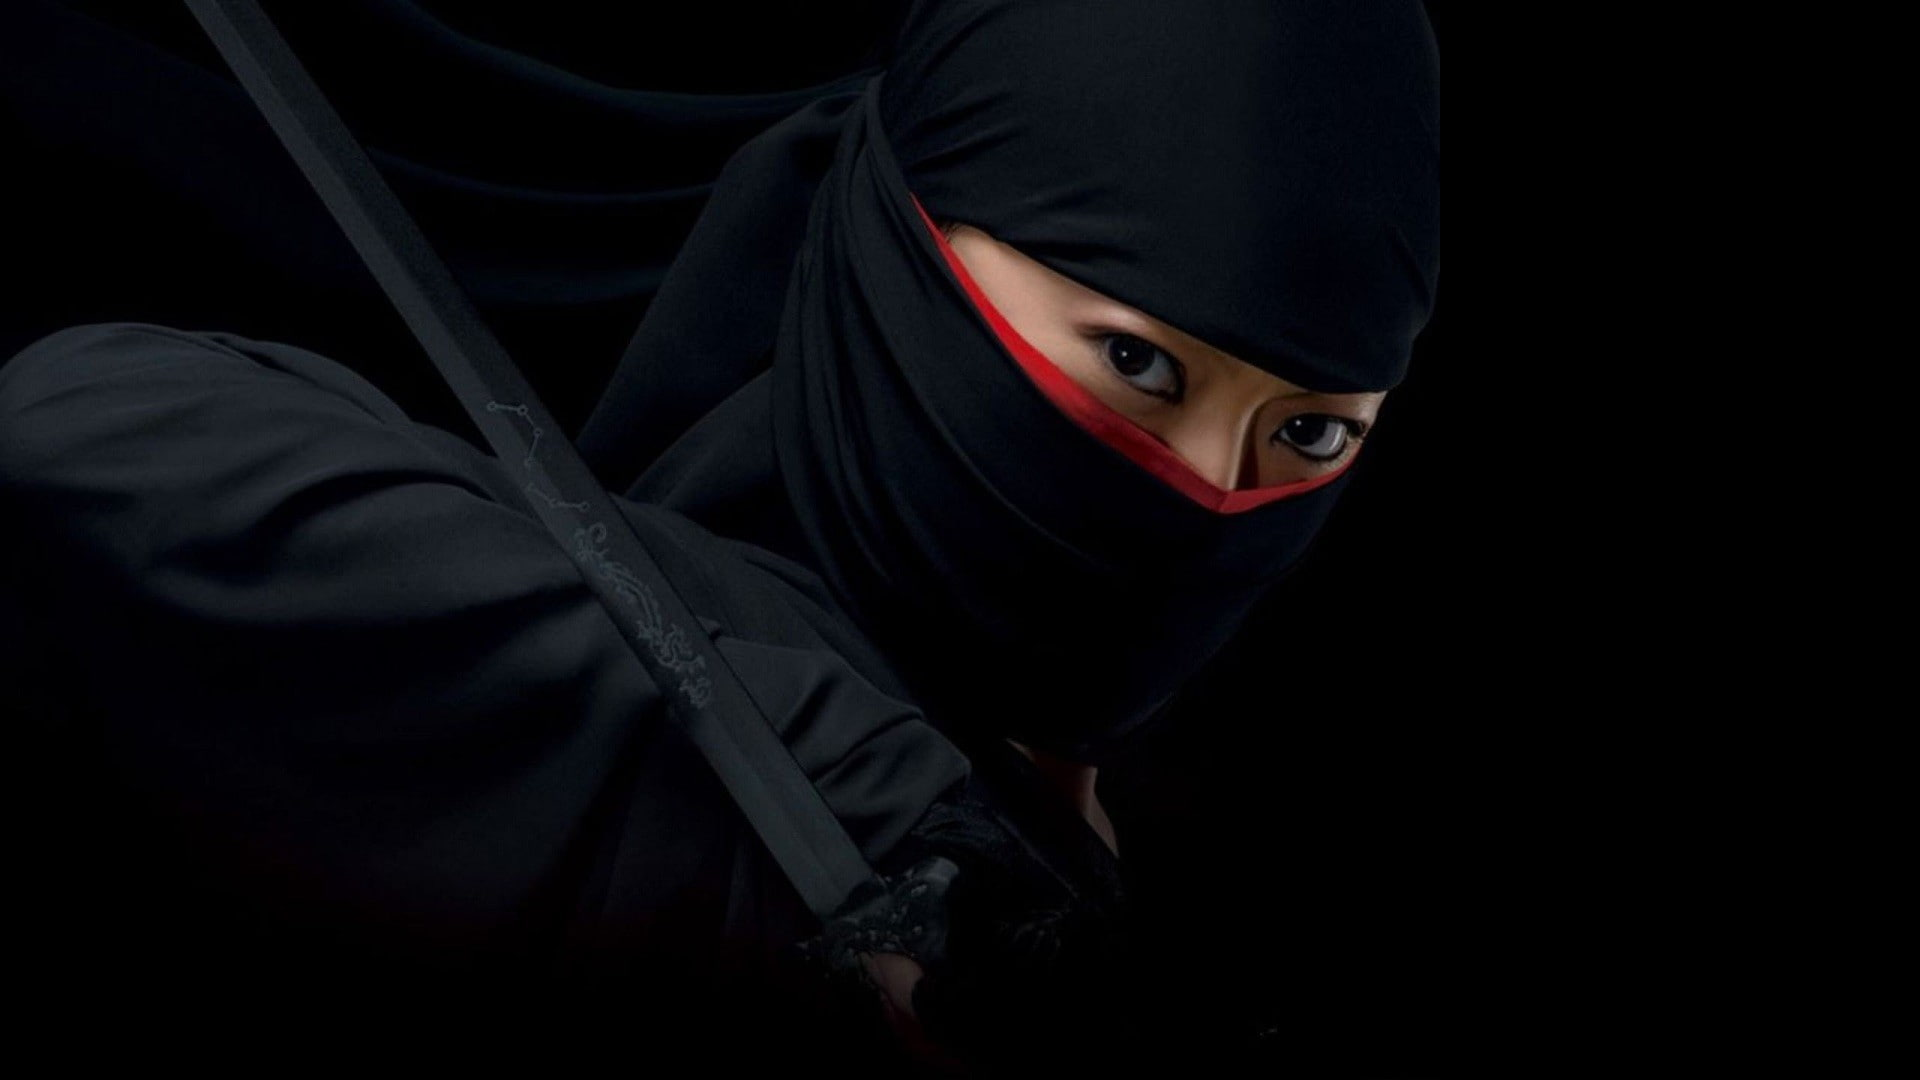 kunoichi-ninjas-women-wallpaper-d92028ad612a7dab866798efe00116cd.jpg